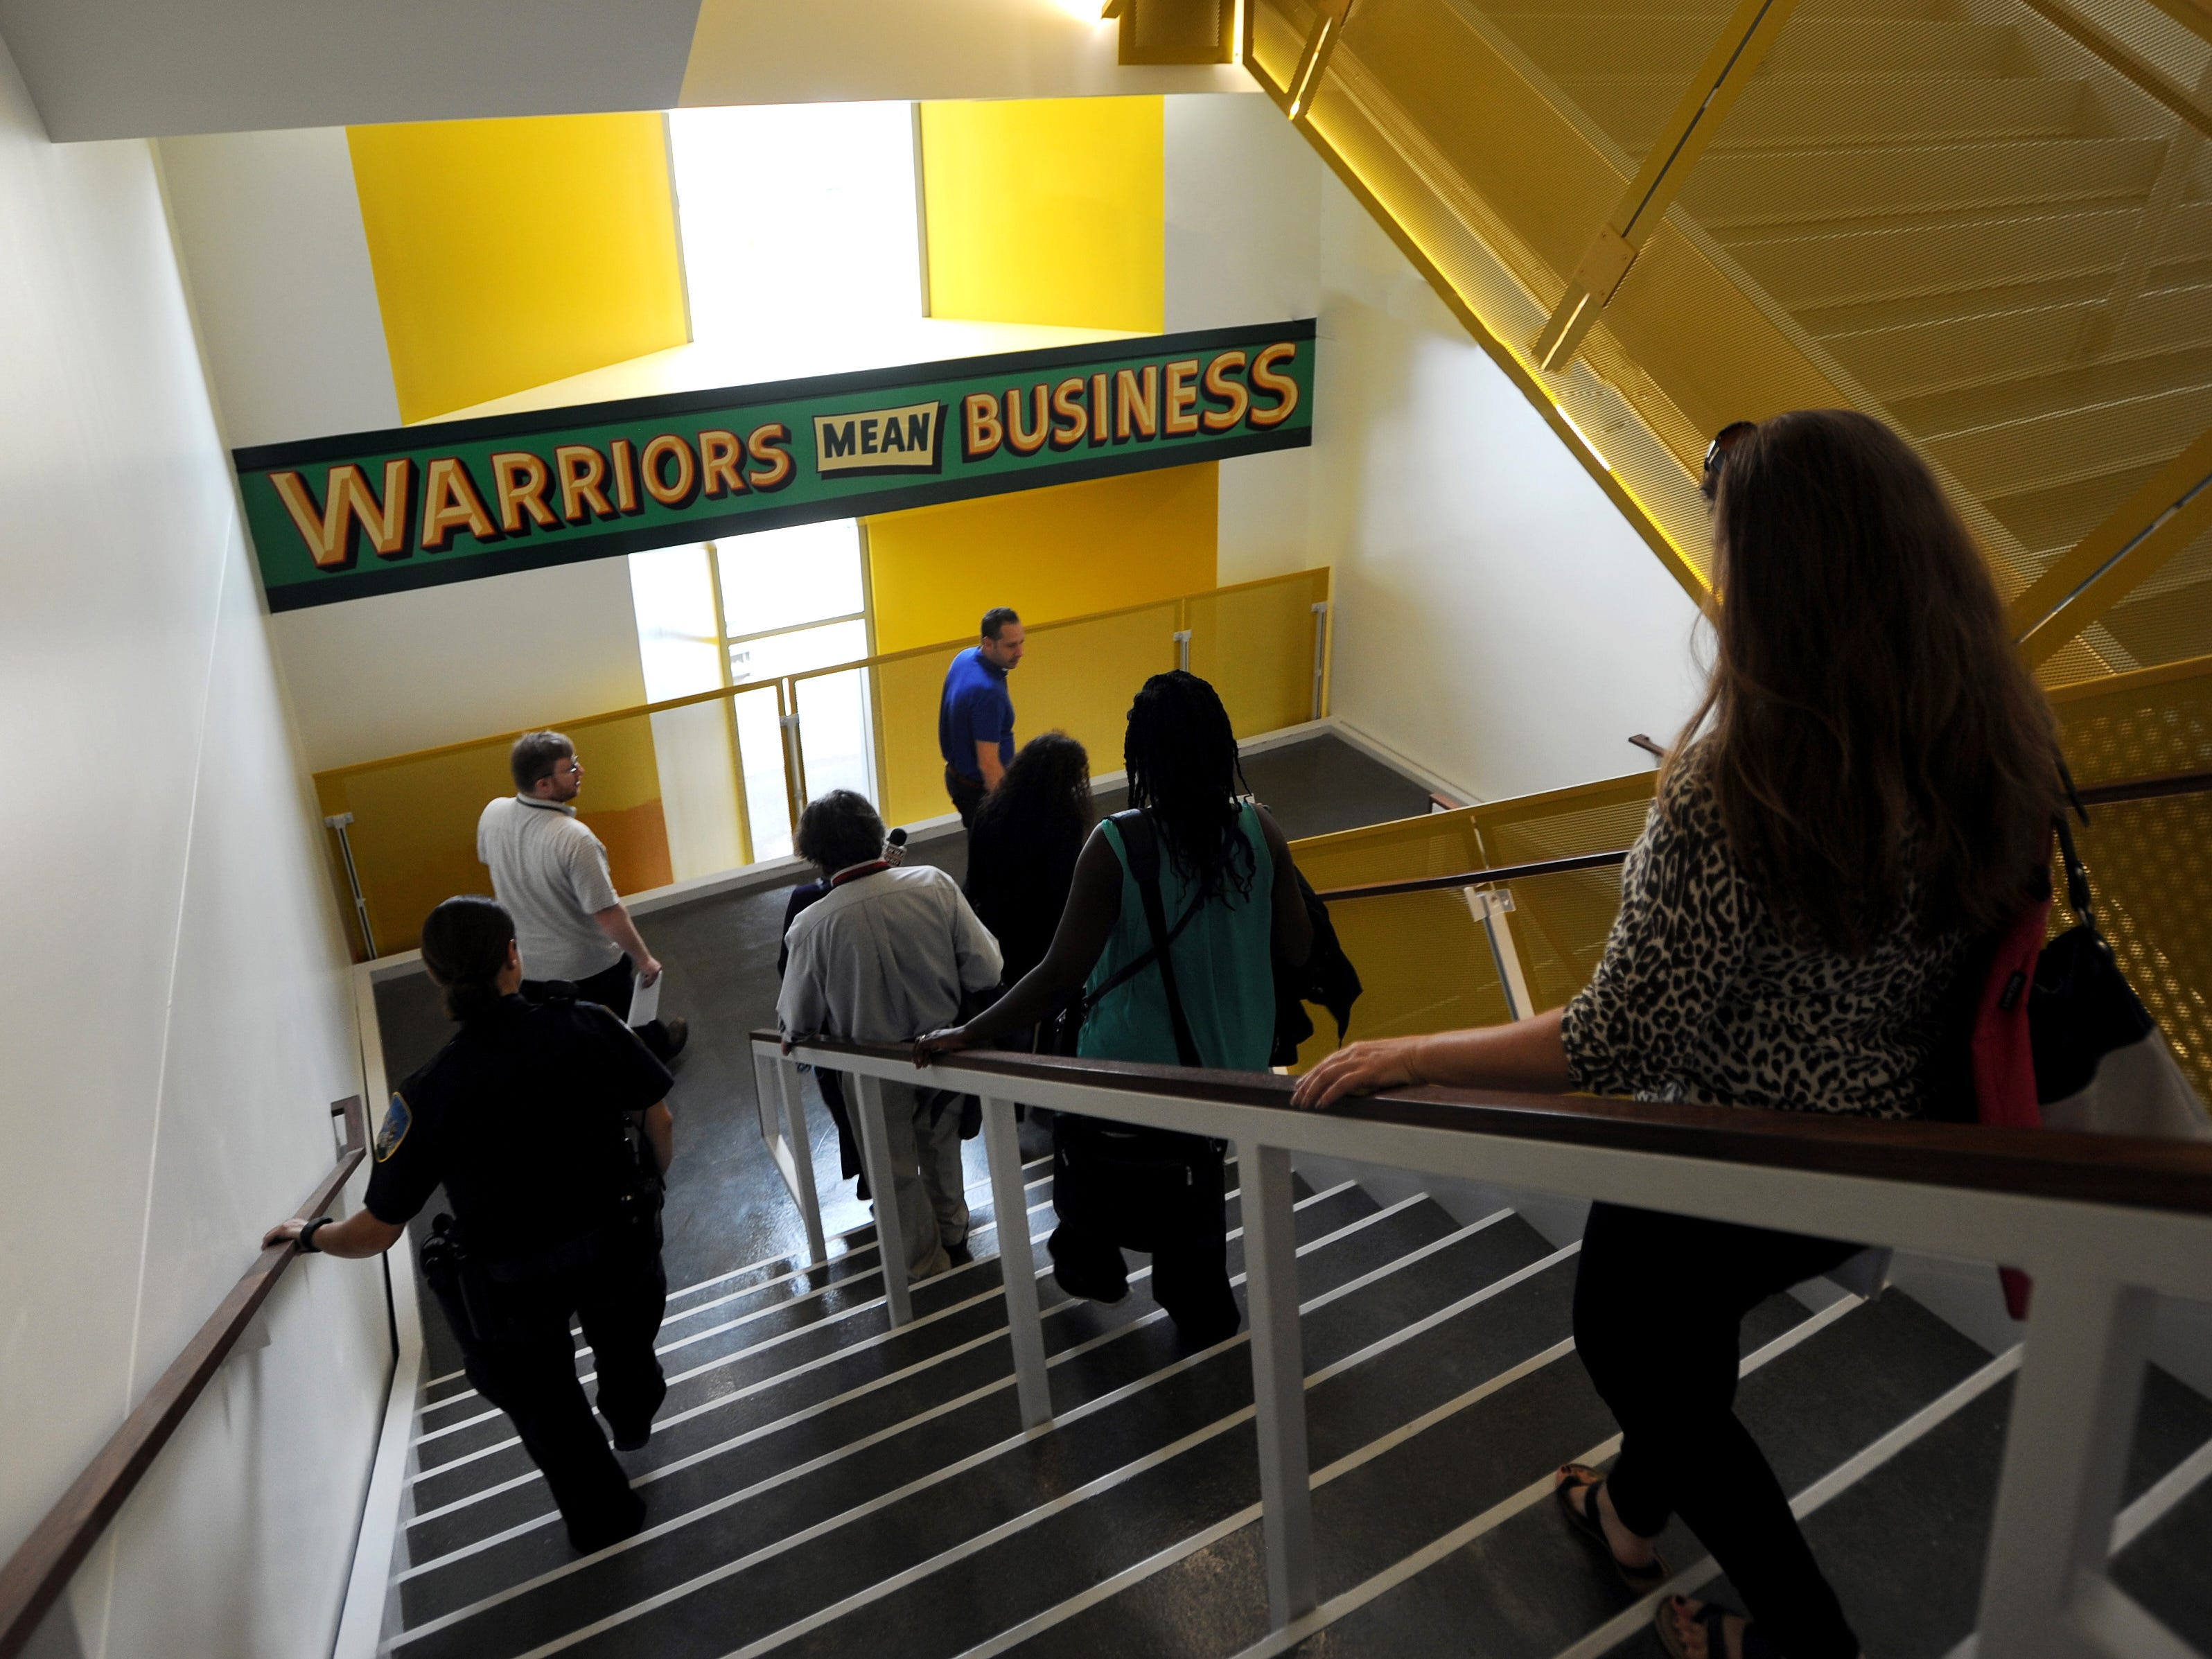 Stairwells on every level are painted with words or paintings at the Mike Ilitch School of Business at Wayne State University.